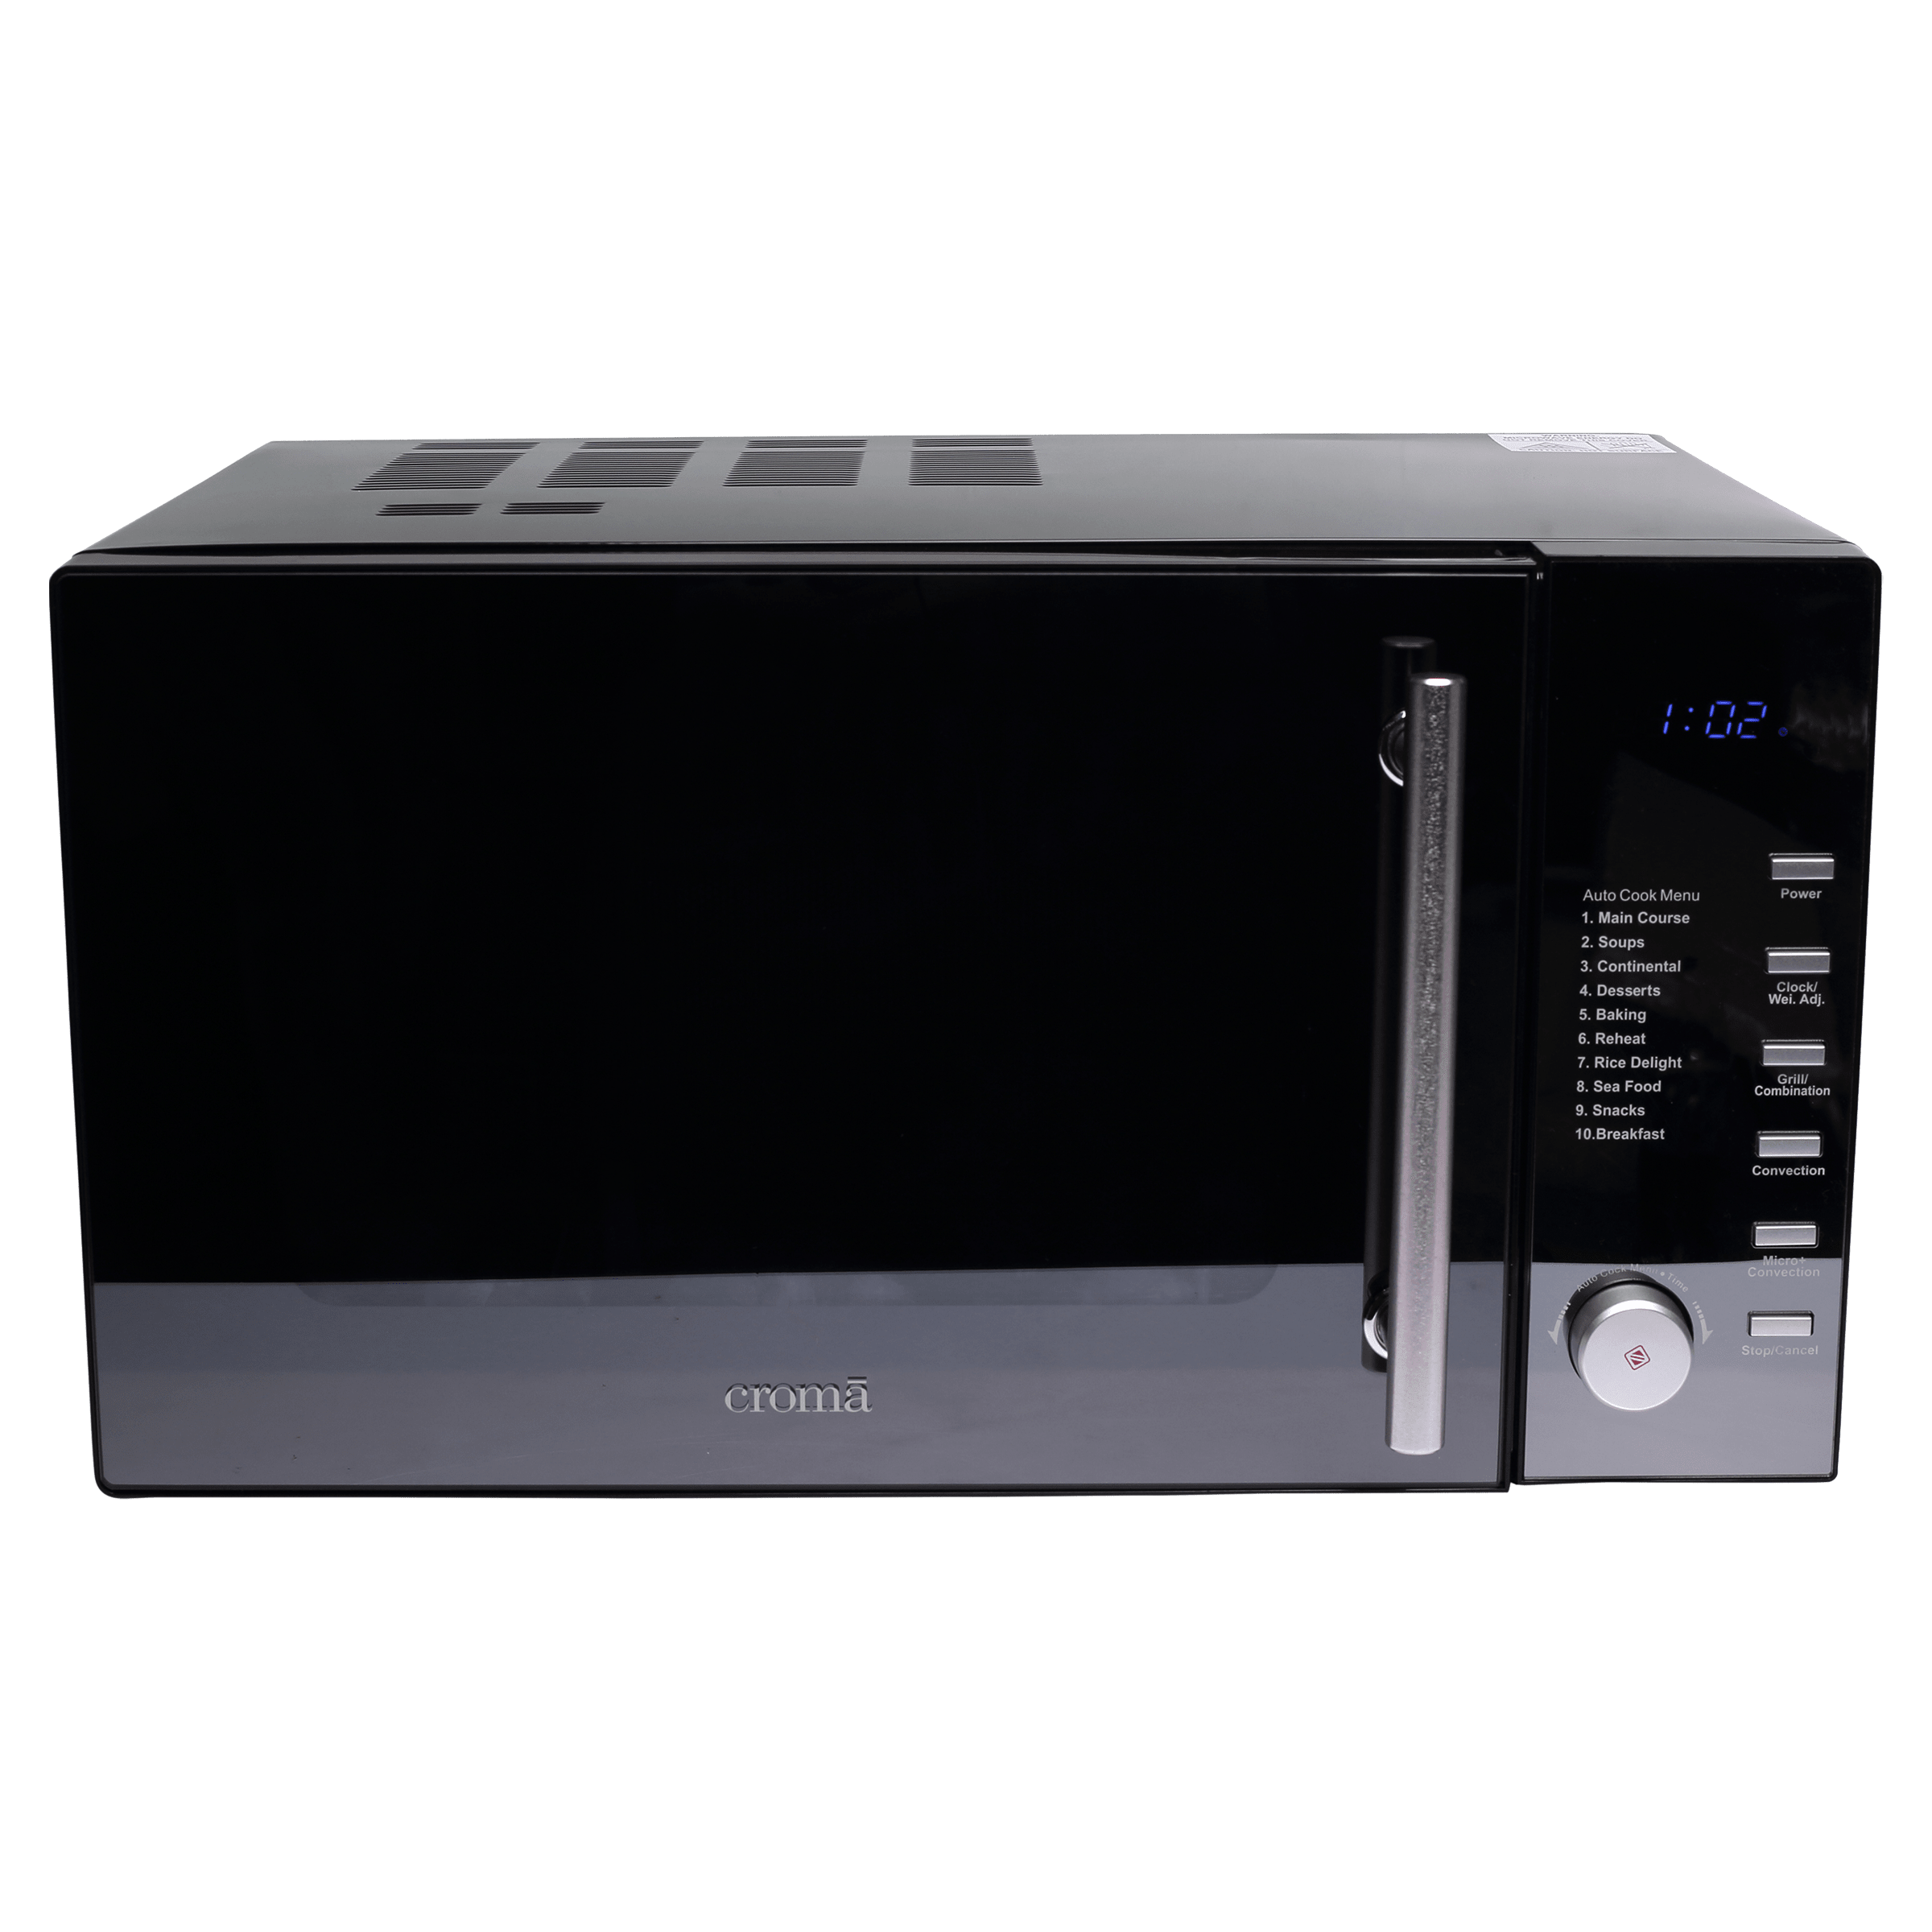 Croma CRAM0191 25 Litres Convection Microwave Oven (Black)